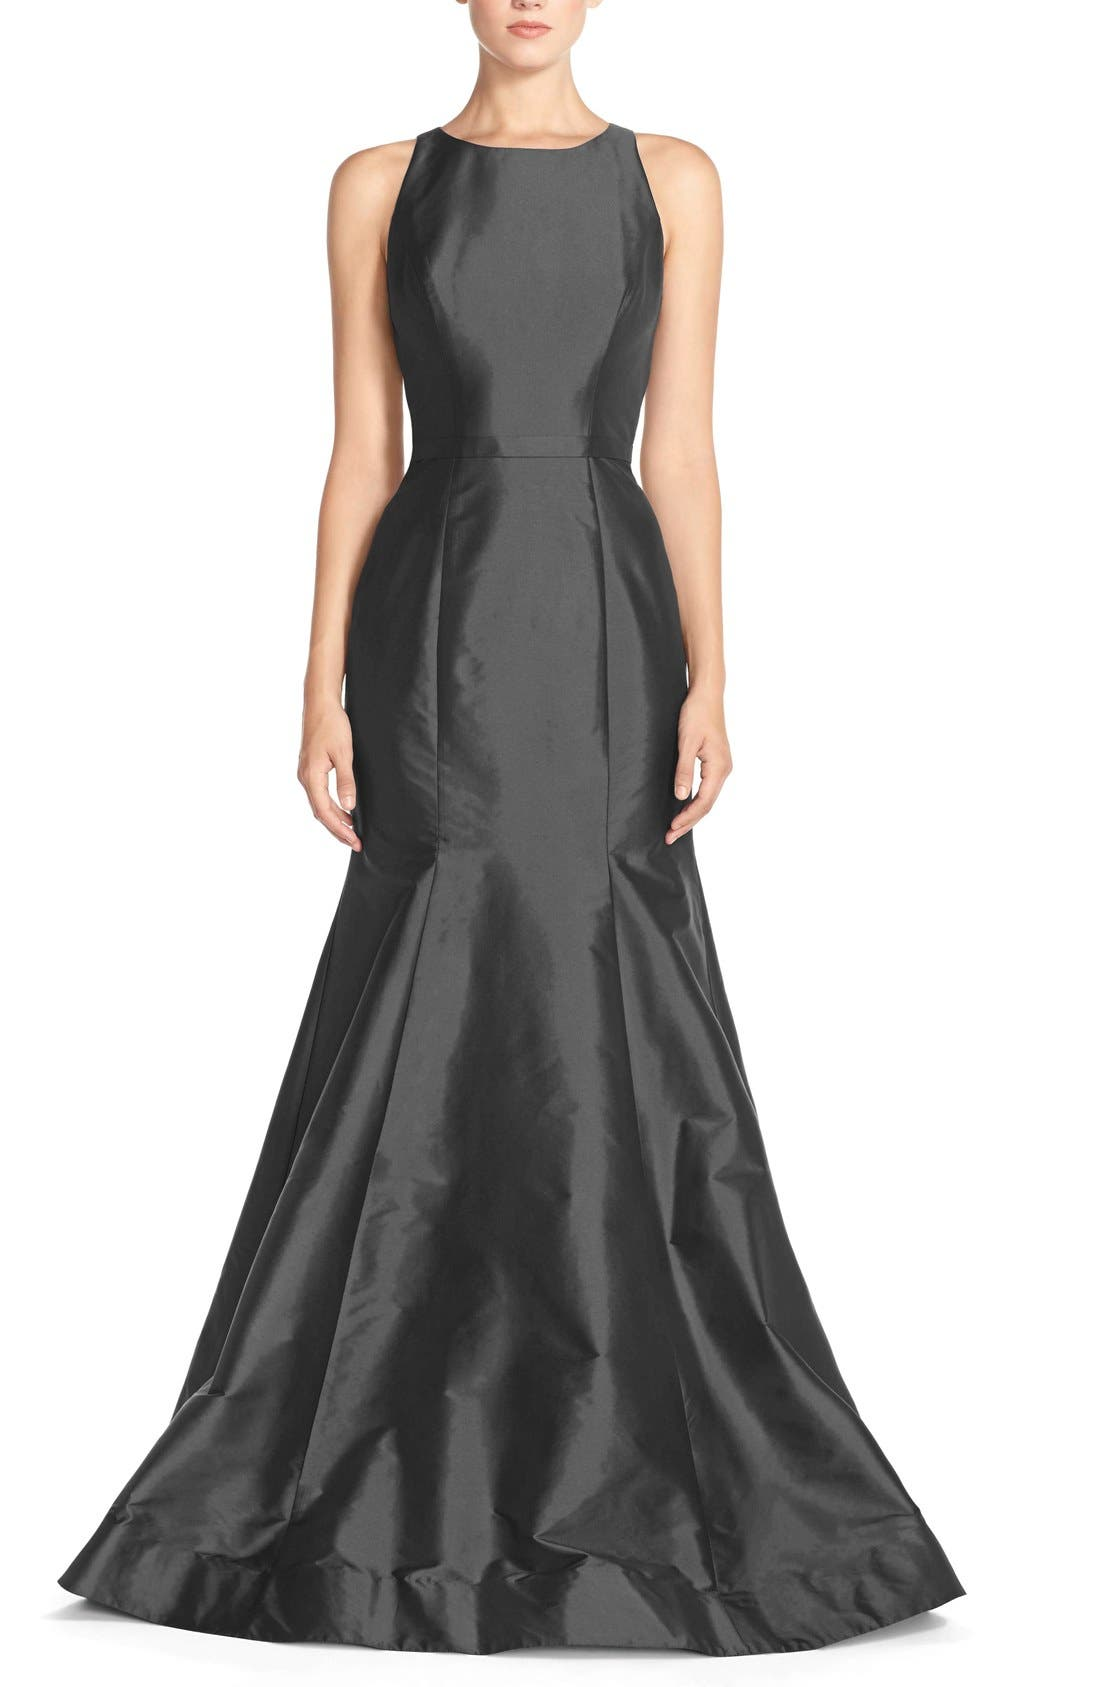 Alternate Image 1 Selected - Monique Lhuillier Bridesmaids Back Cutout Taffeta Mermaid Gown